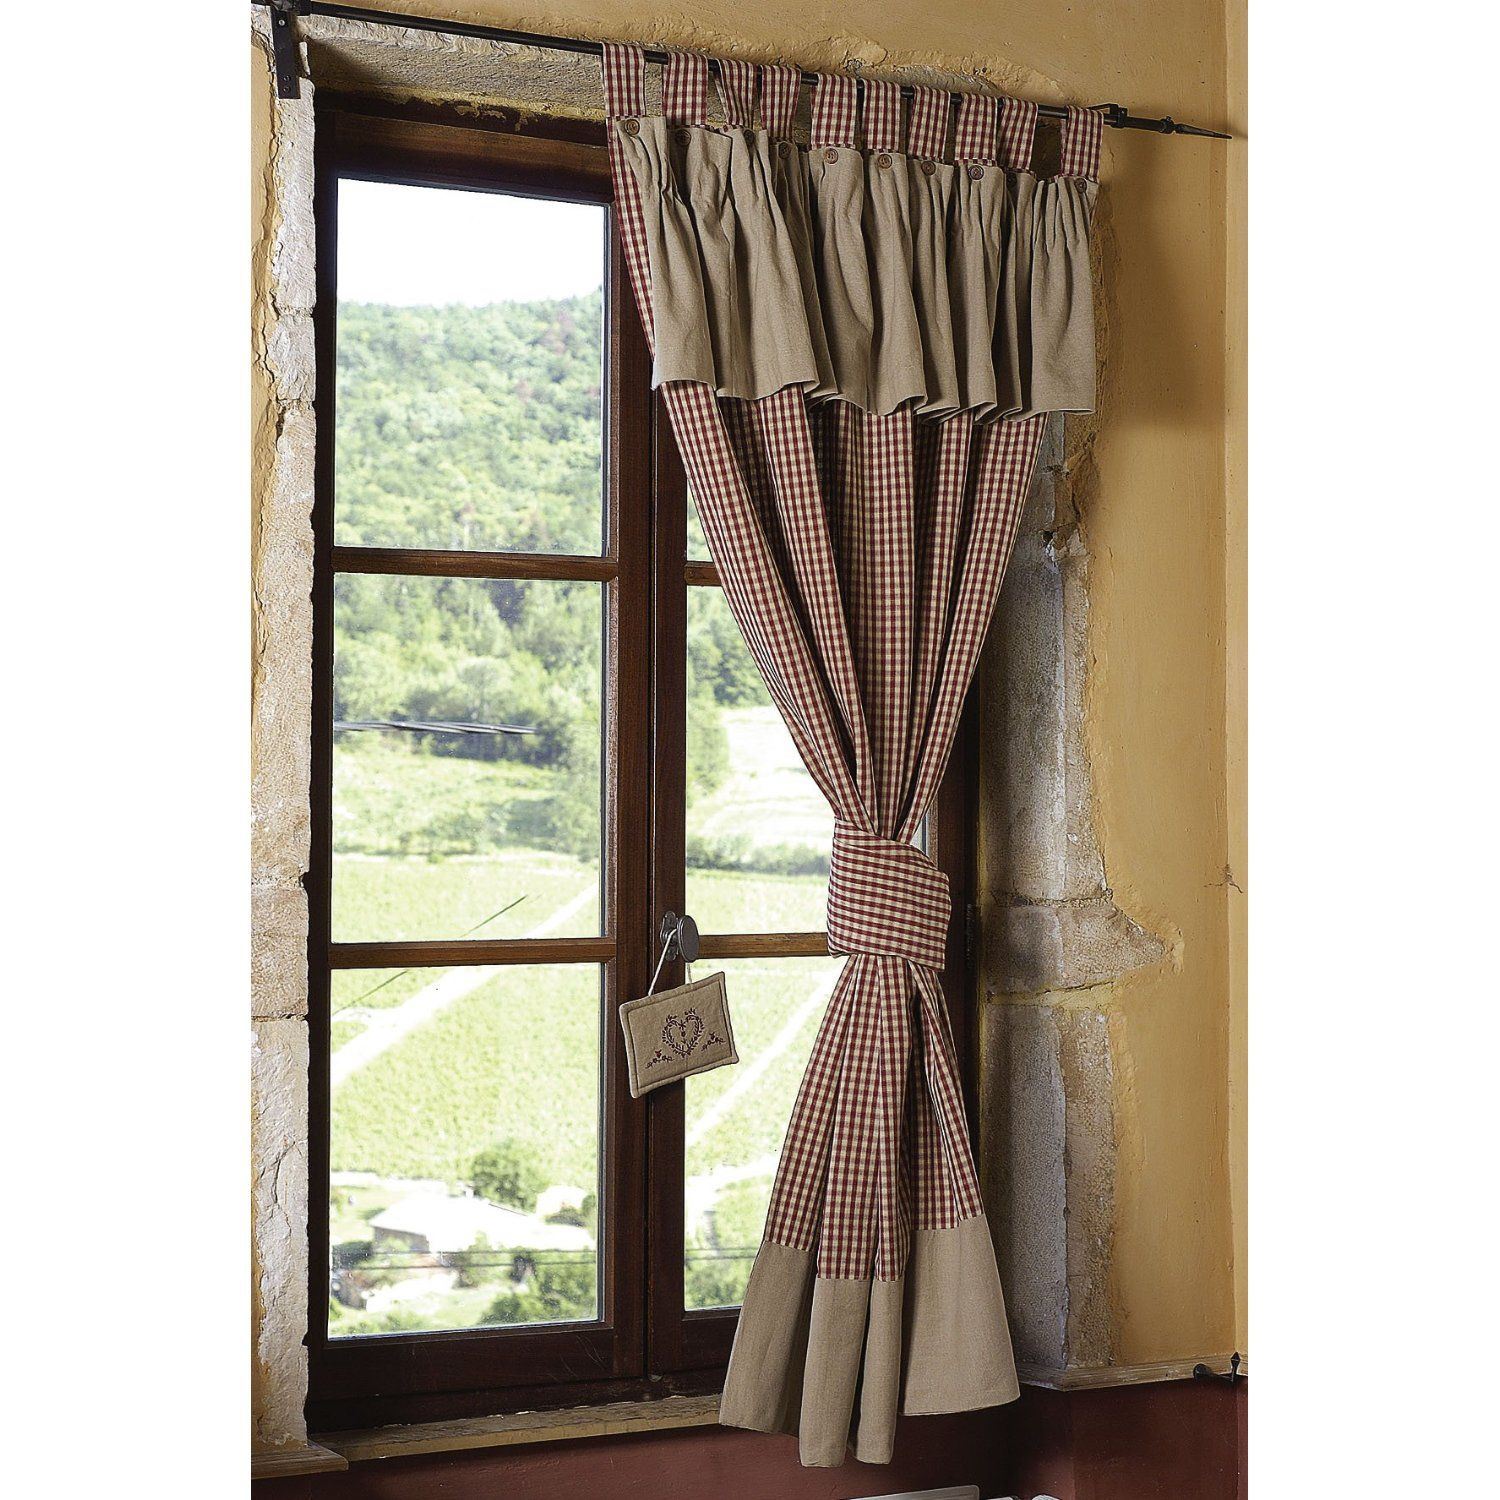 Landhaus Gardinen Für Küche Gardinen Landhaus In 2019 Pinterest Curtains Window